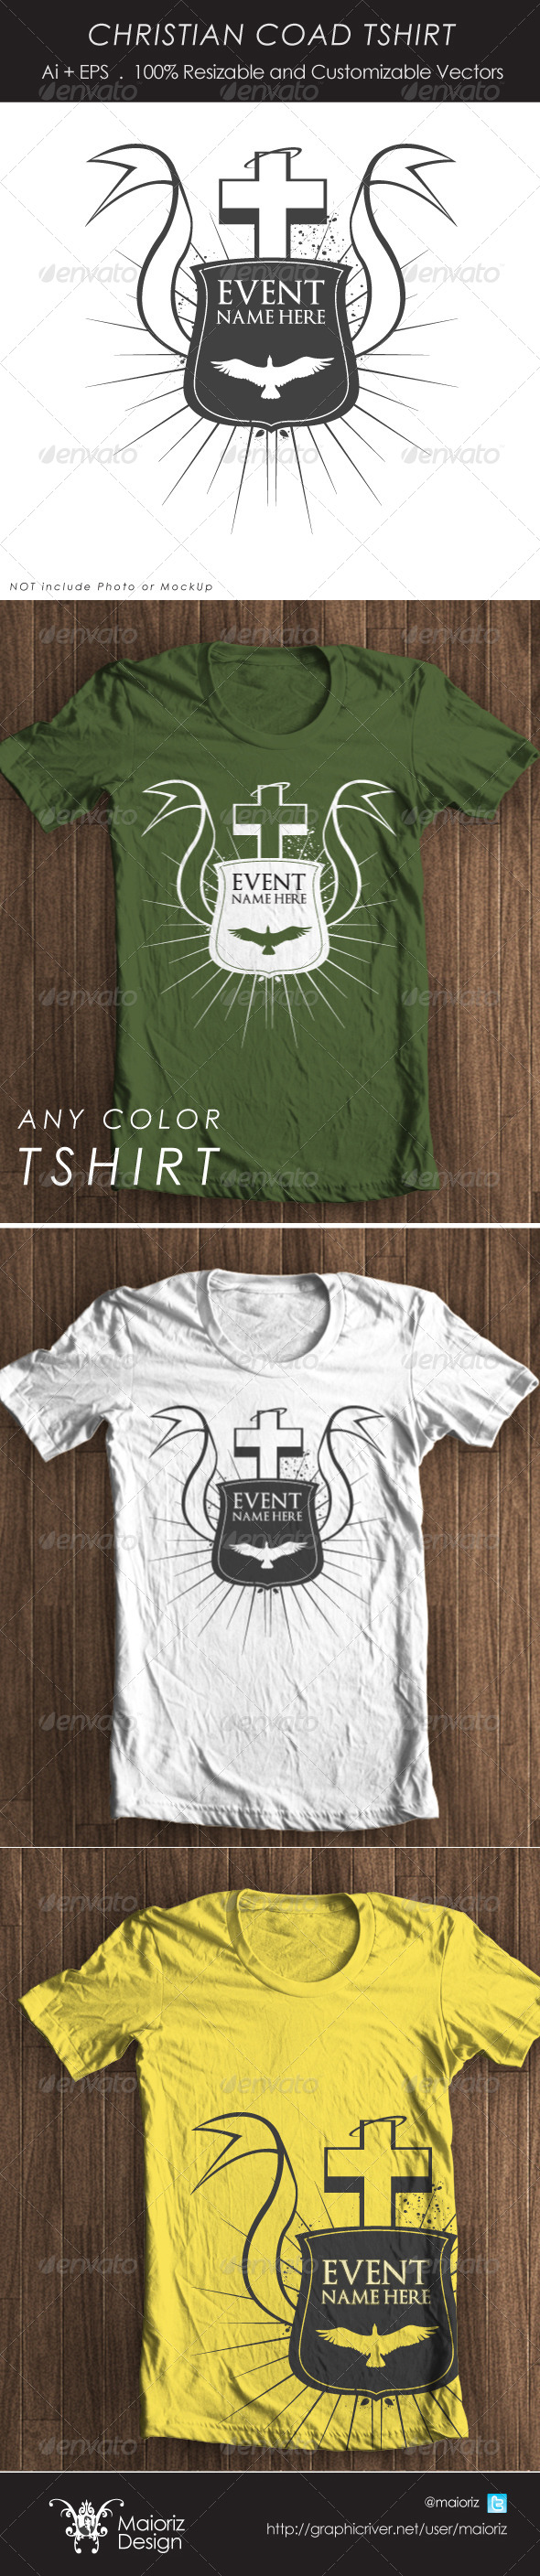 Christian Event Tshirt - Church T-Shirts